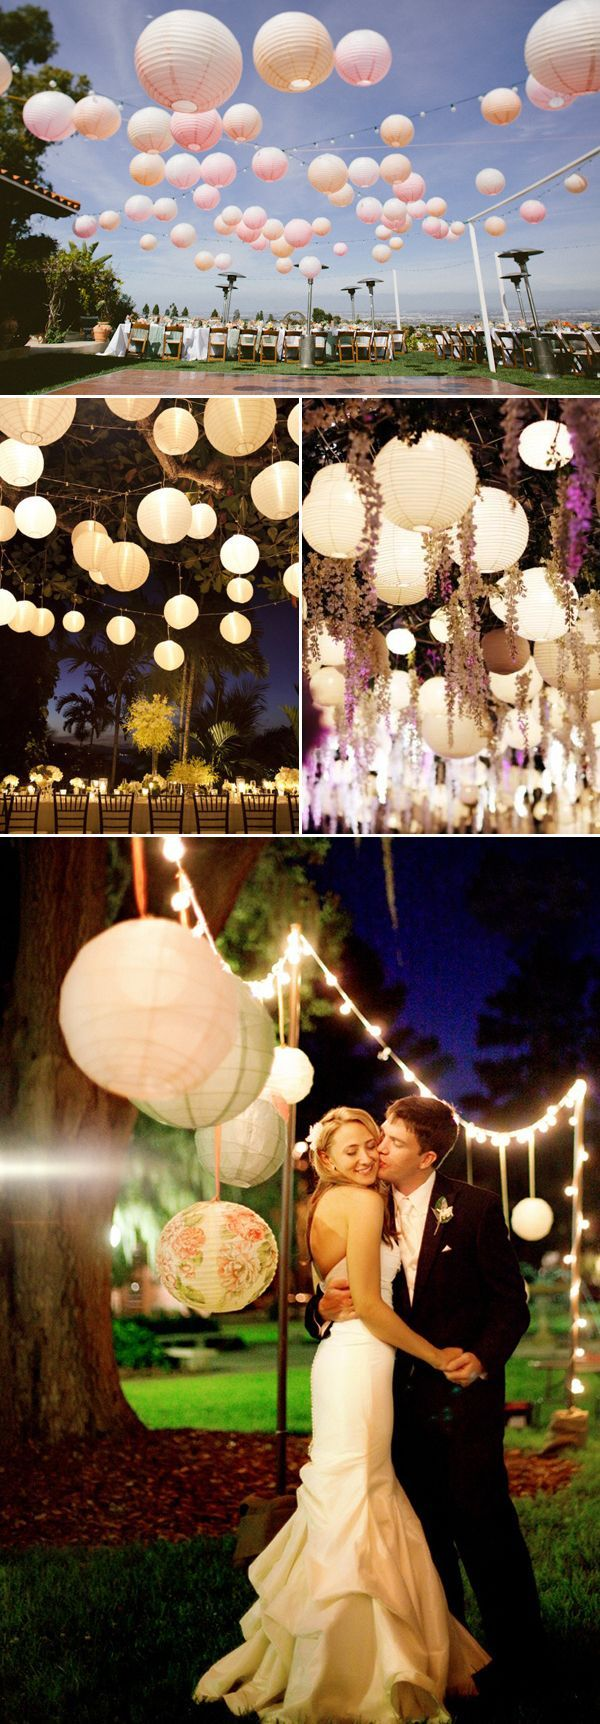 Wedding outdoor decorations (the lights!).